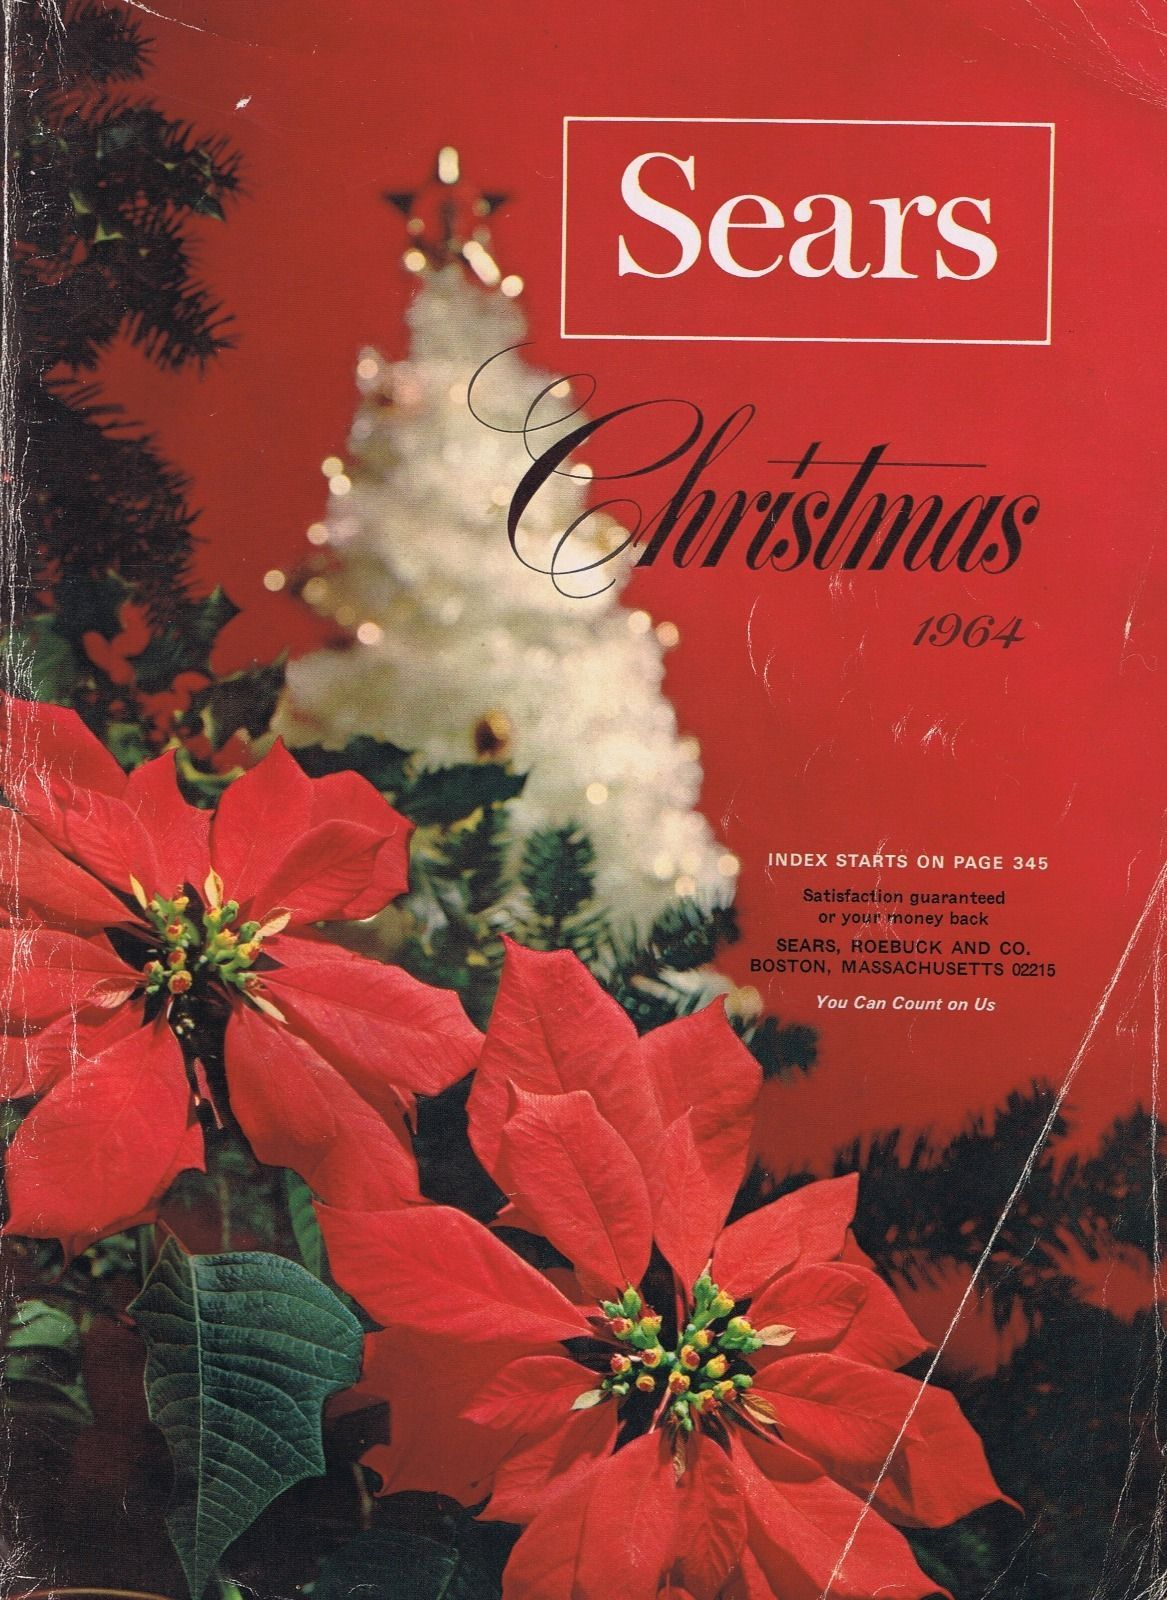 Sears Christmas Photos.What Sears Meant To Christmas My Merry Christmas